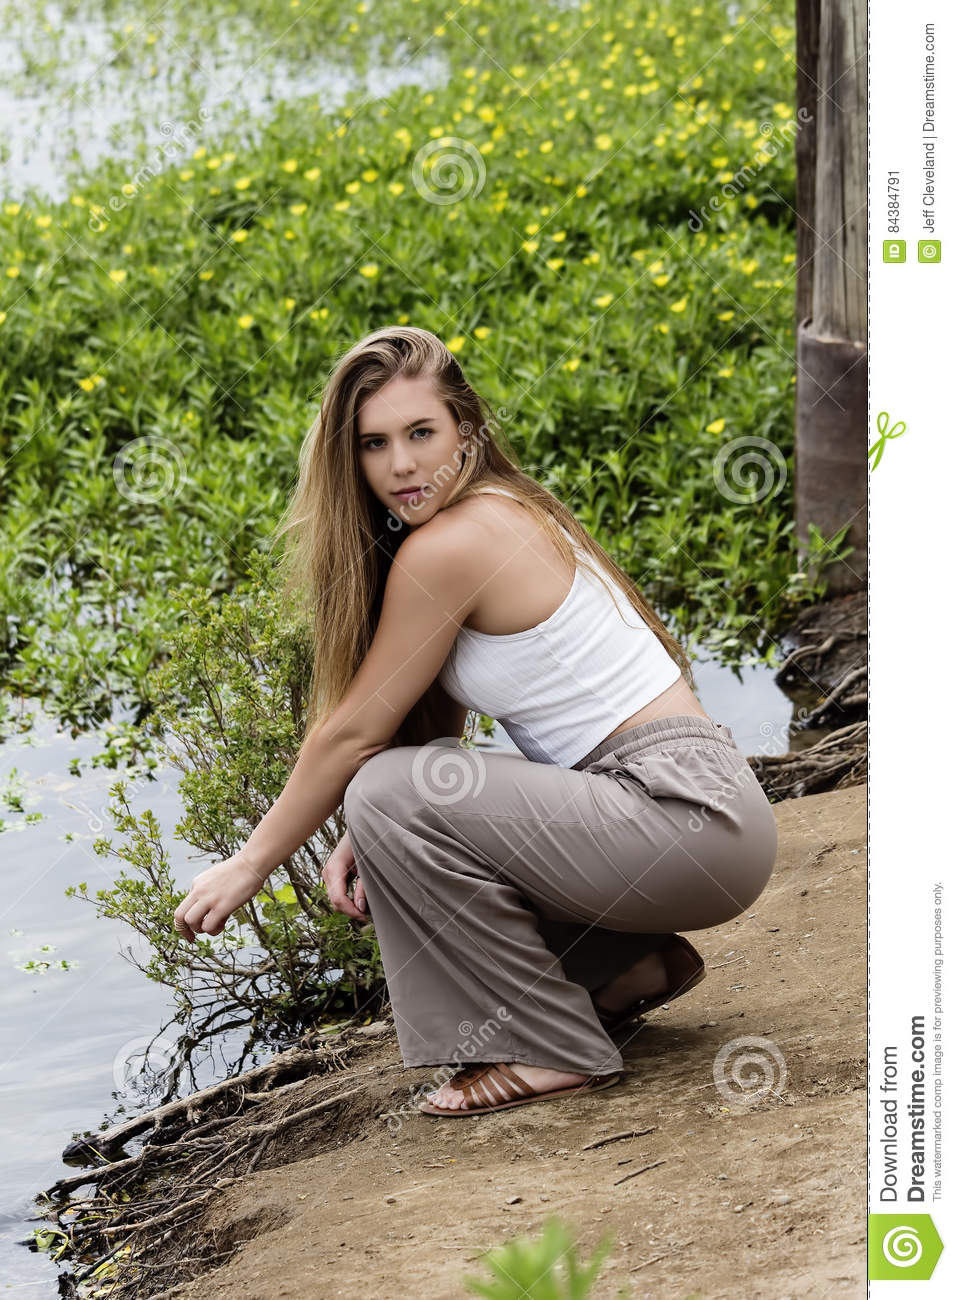 Teenage Caucasian Girl15 Years Old Sitting Outdoors: Caucasian Teen Girl Squatting On River Bank Stock Image